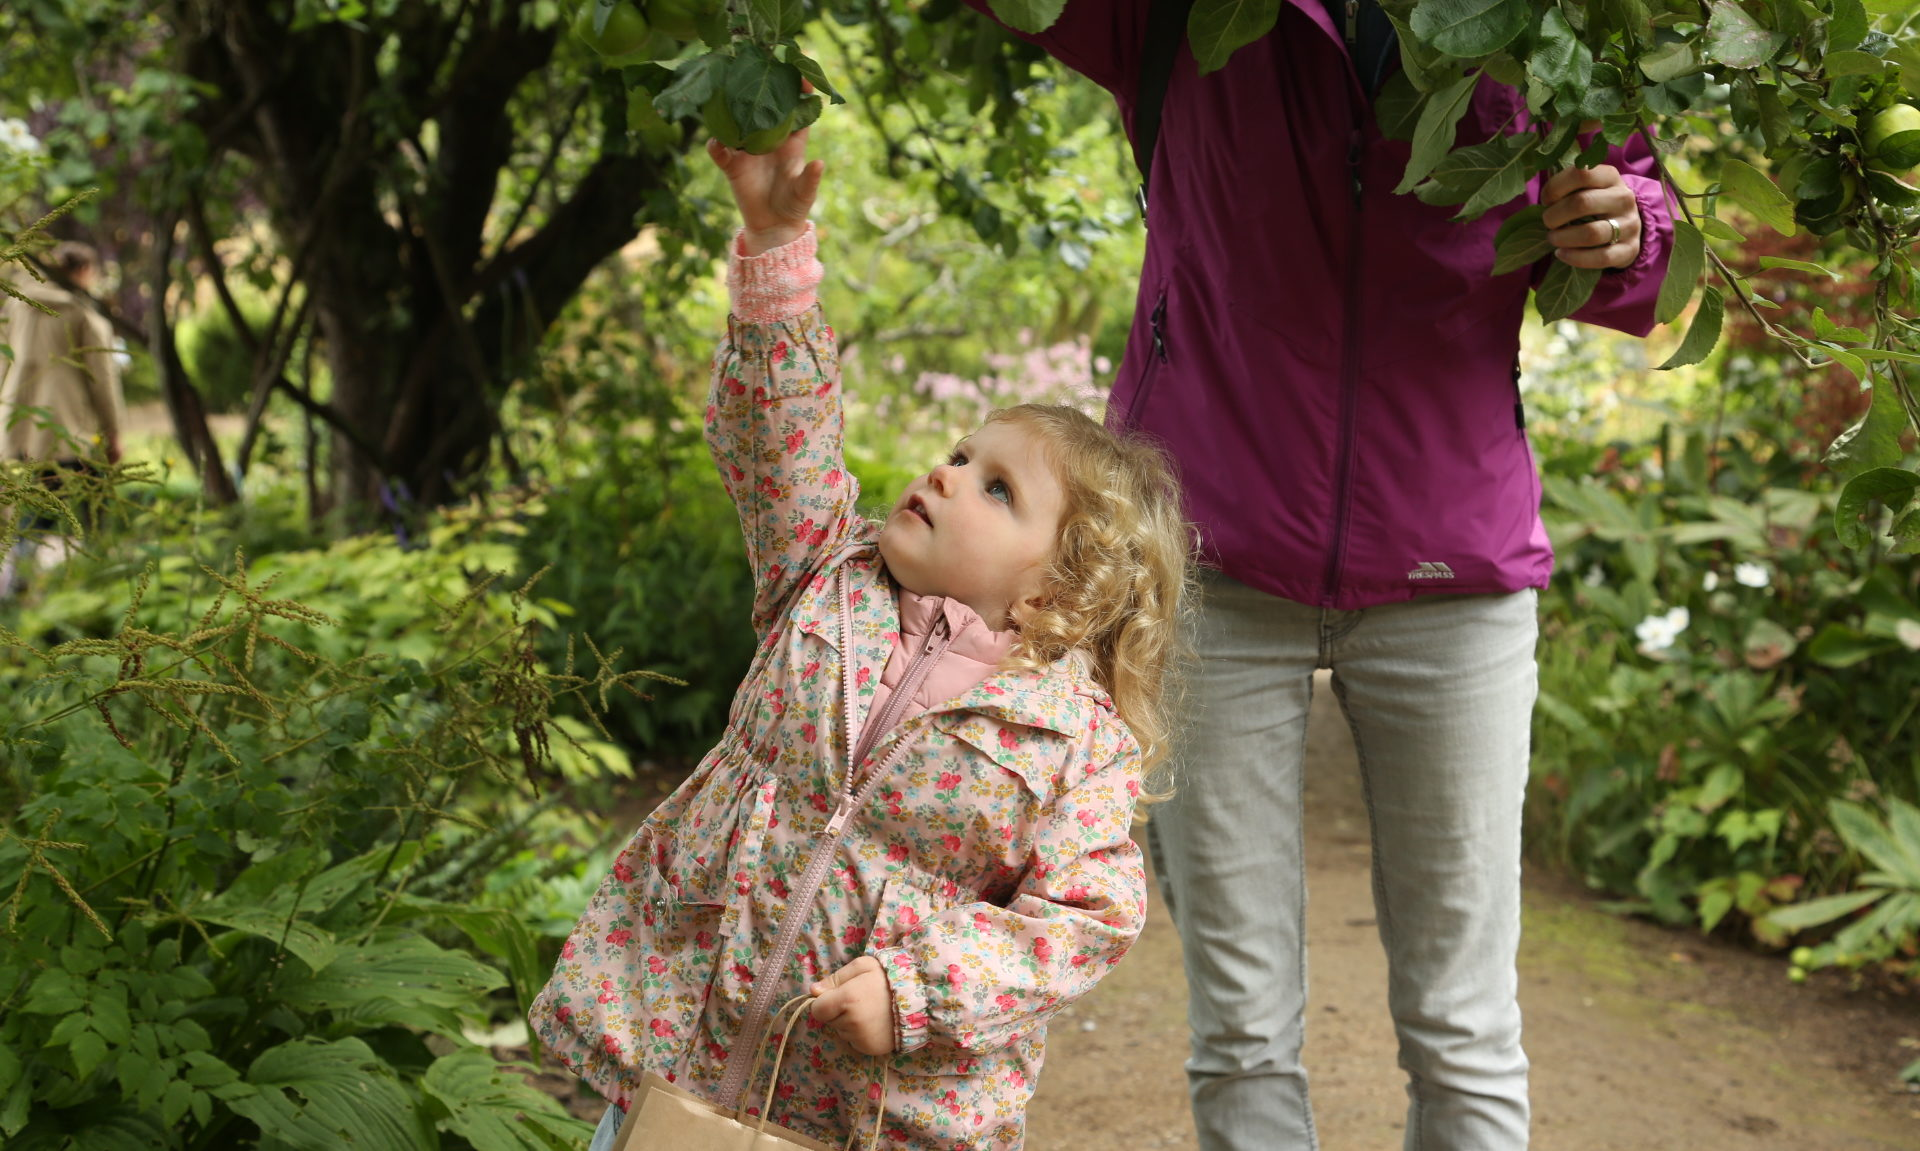 A foraging child